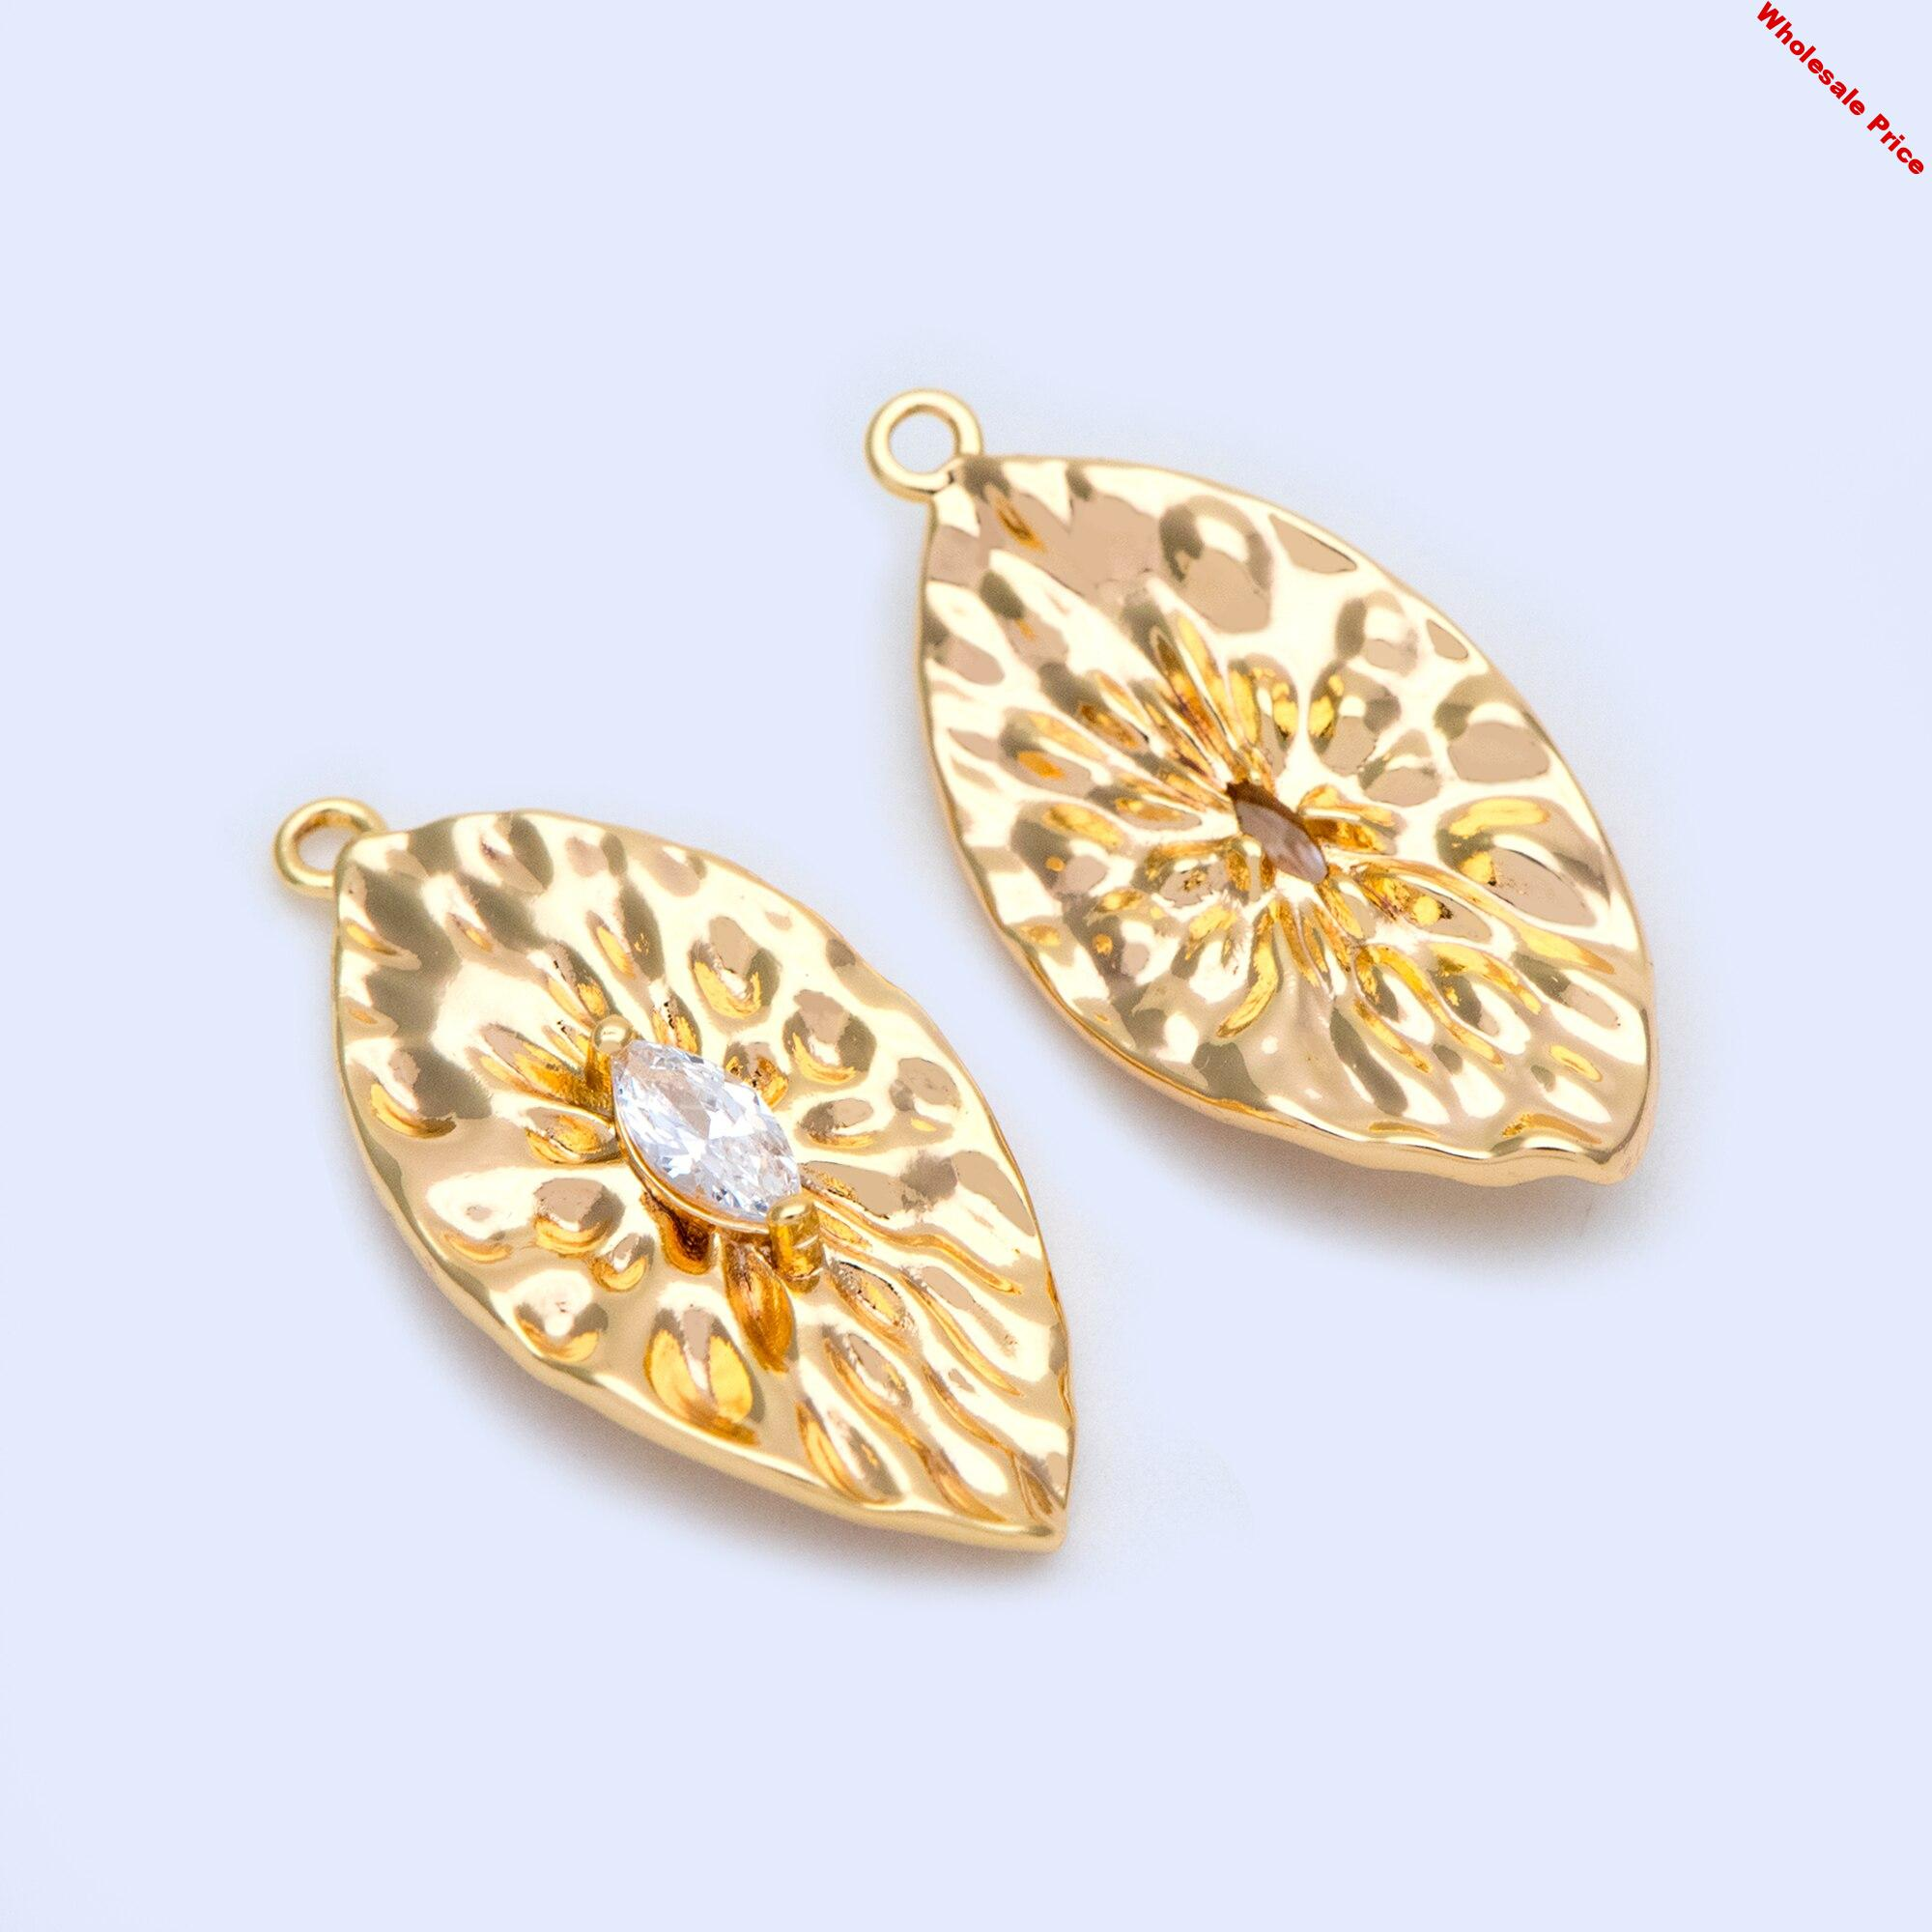 10pcs Gold plated Brass Cubic Zirconia Hammered Leaf Charms